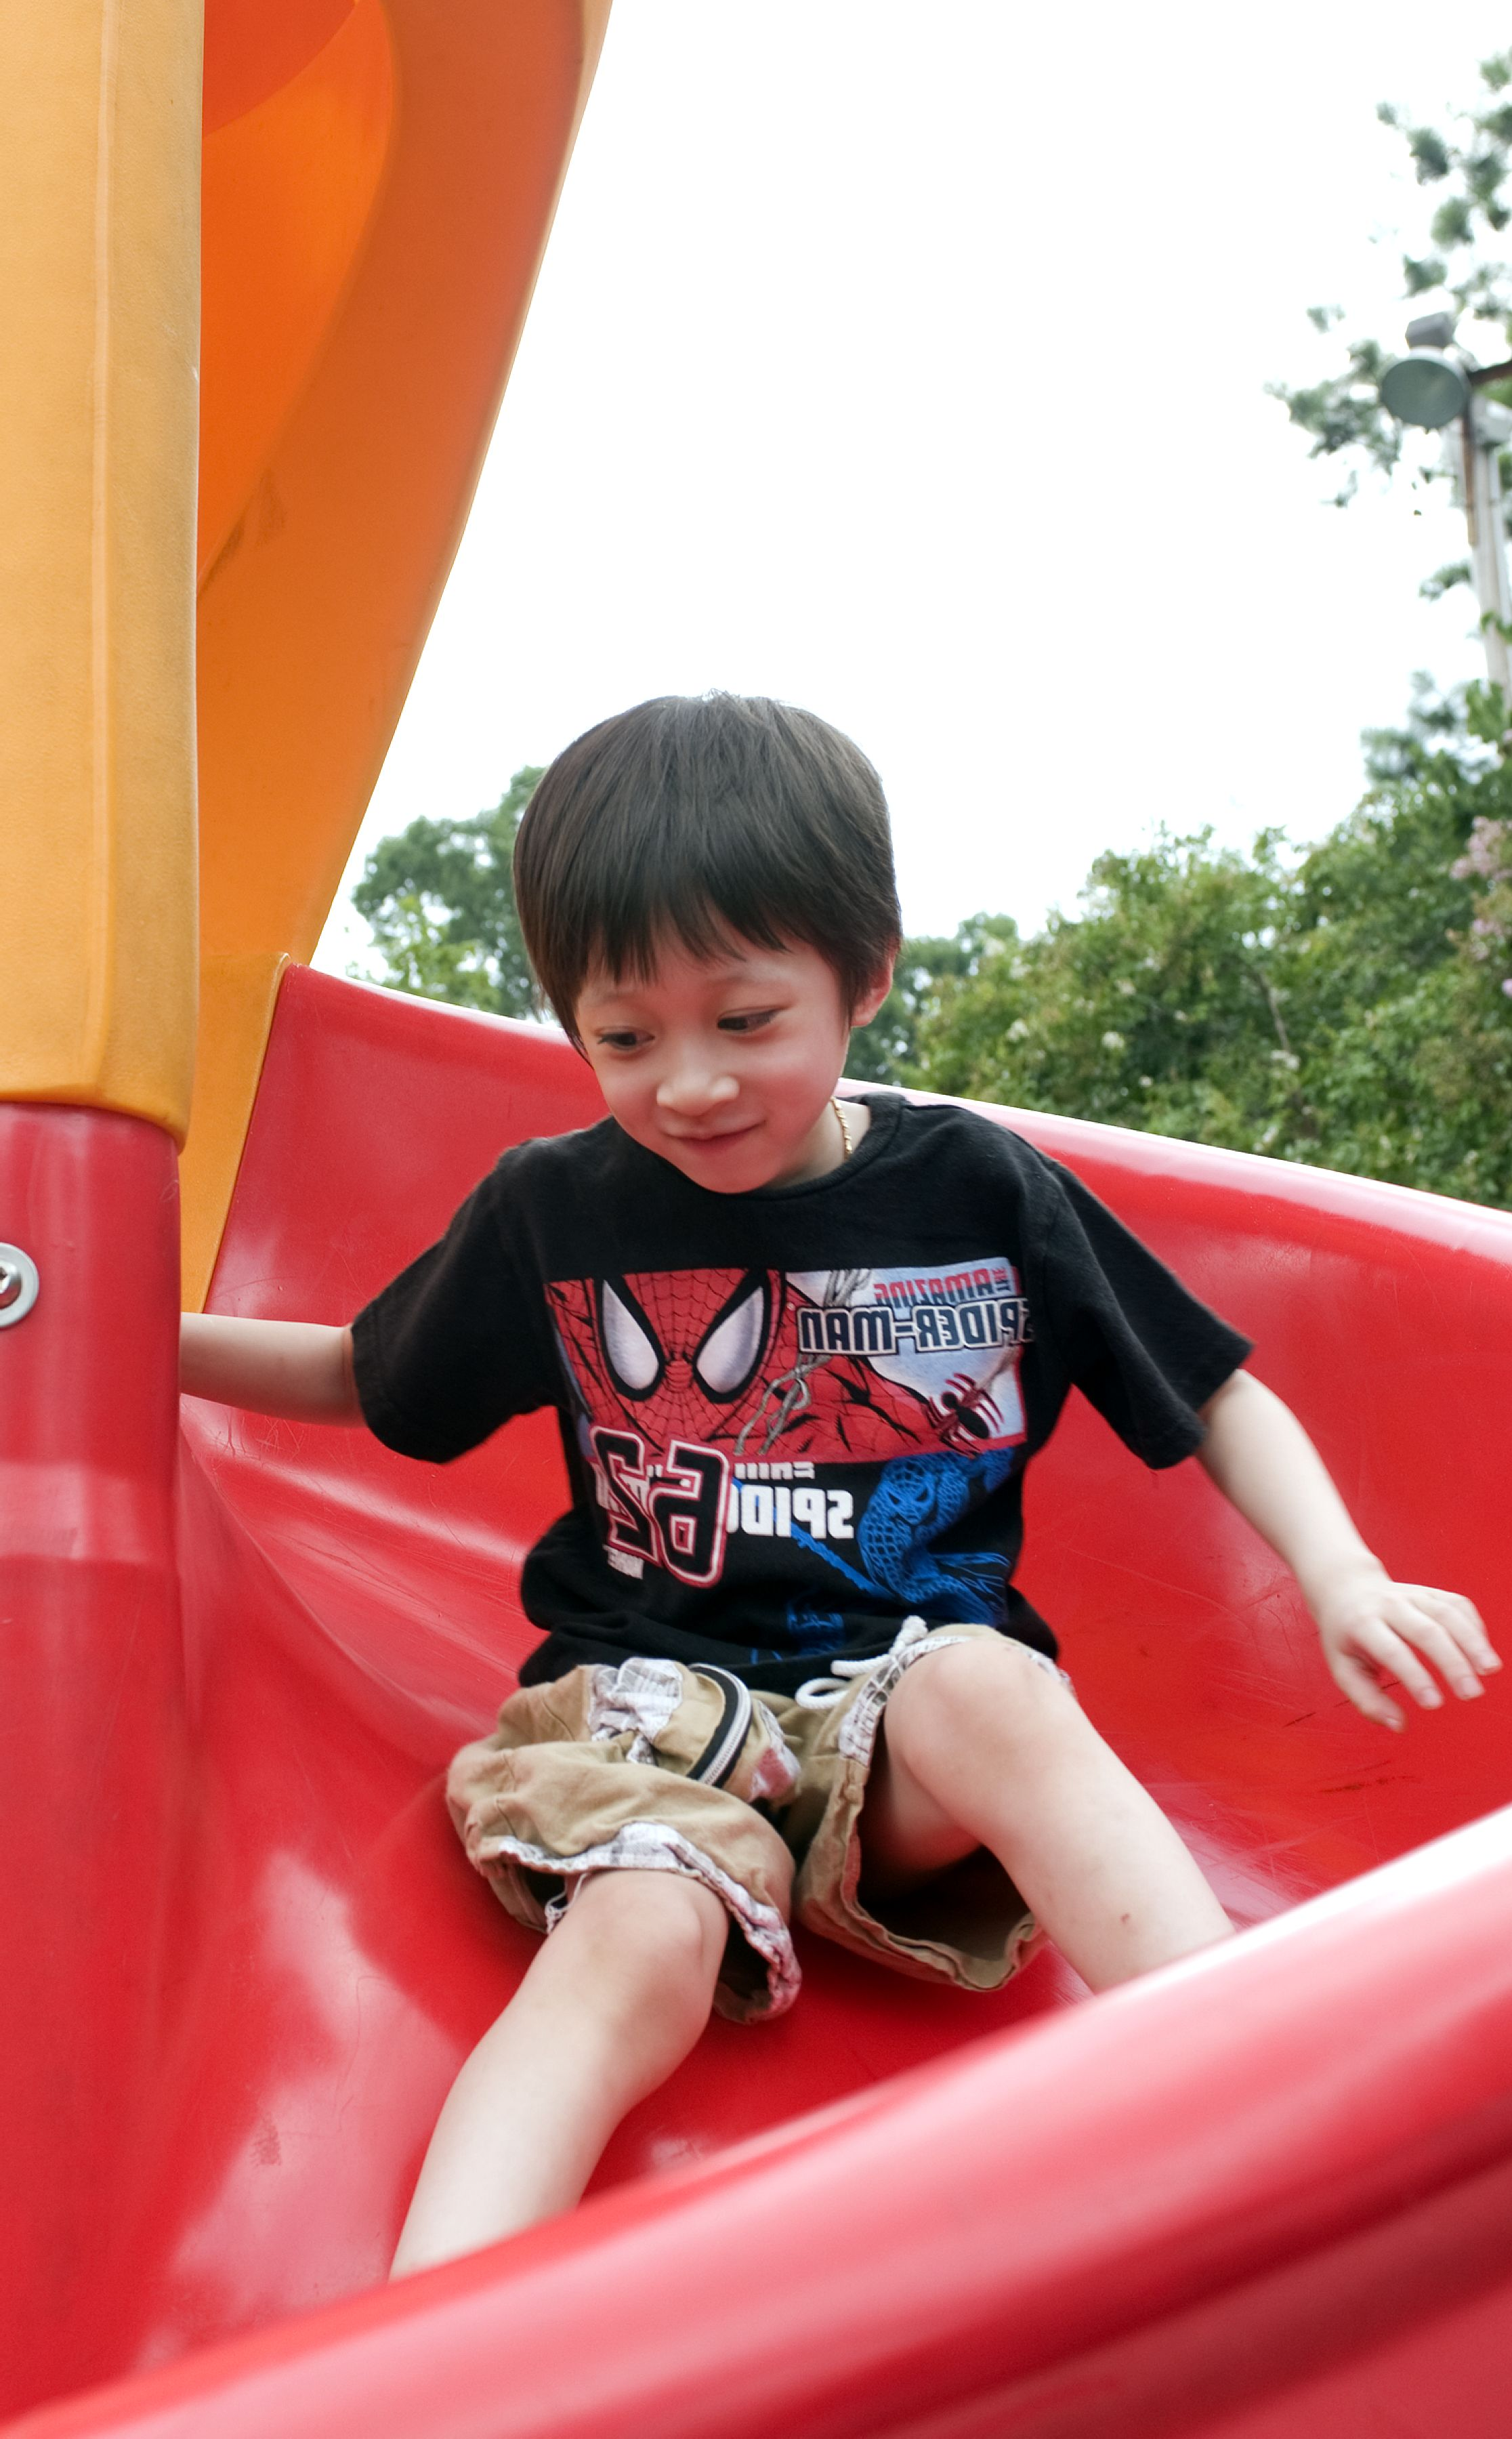 Free Picture Young Boy Taking Trip Down Bright Red Slide